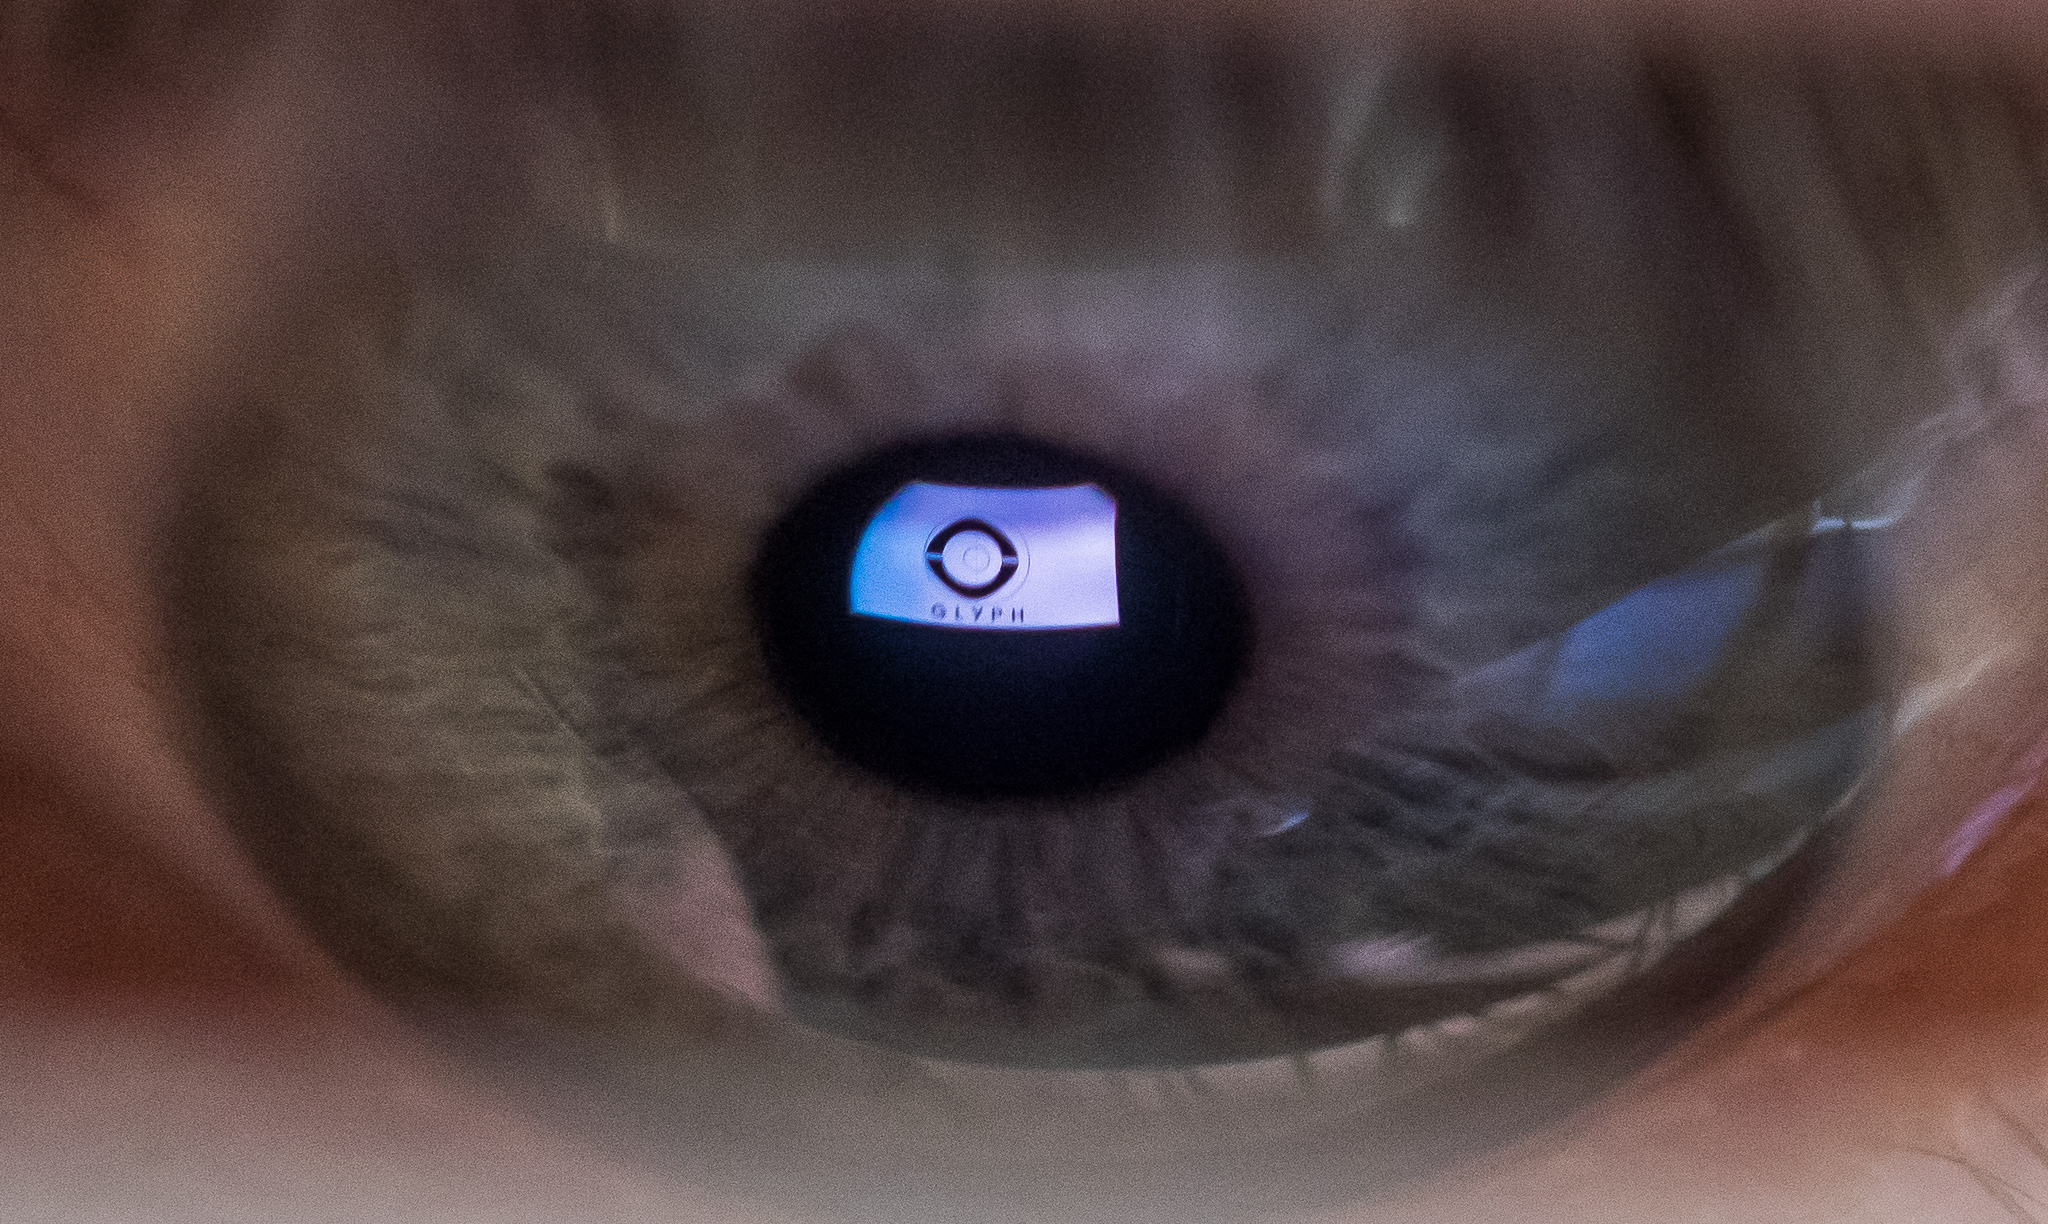 The micro-mirror display of an Avegant Glyph is reflected in cellist Phillip Sheppard's eye